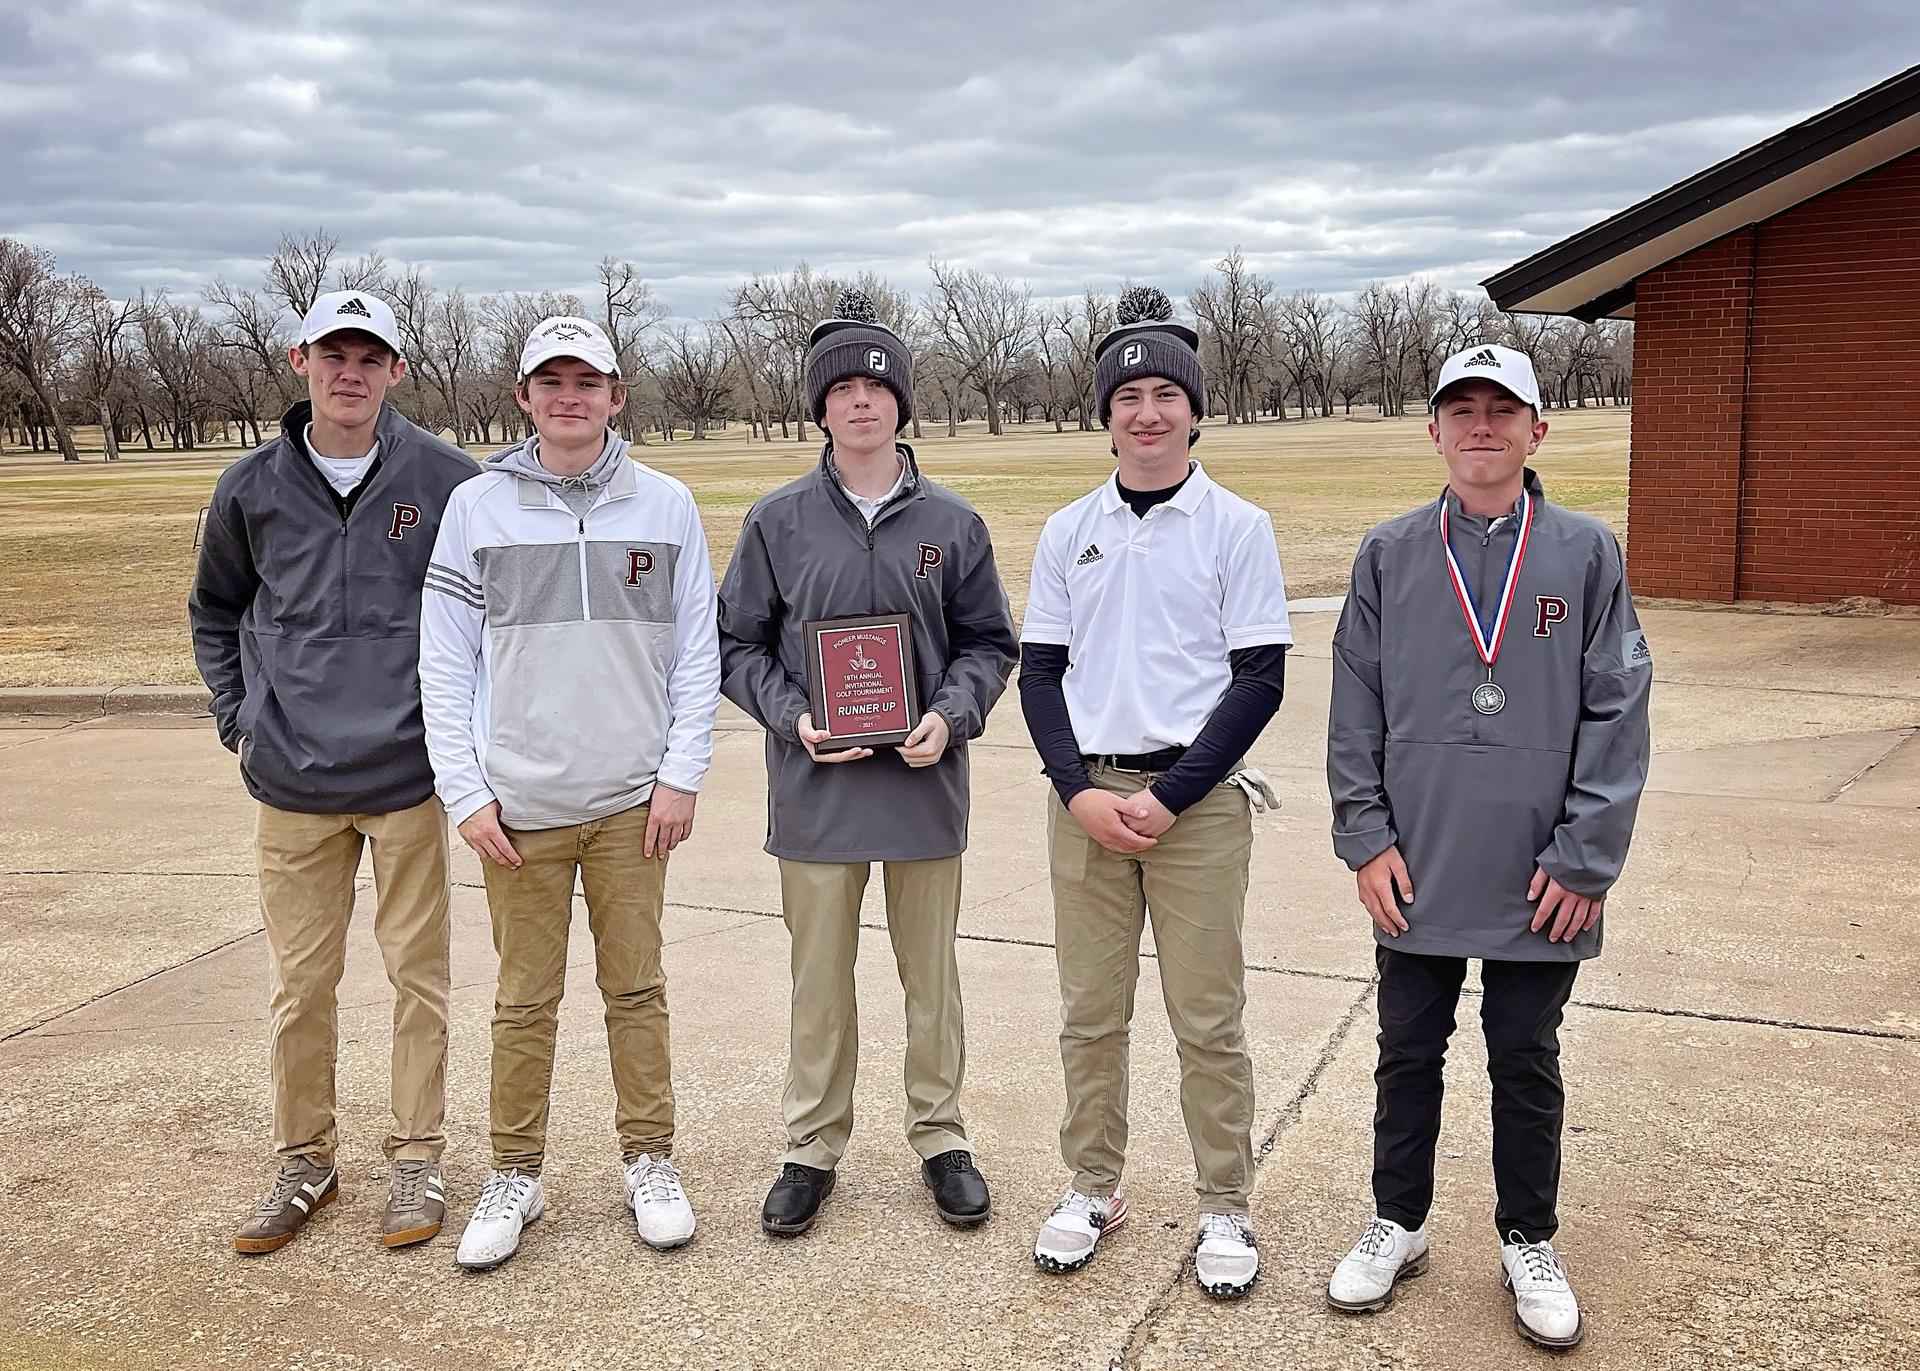 Golf Team placed 2nd at Meadowlake